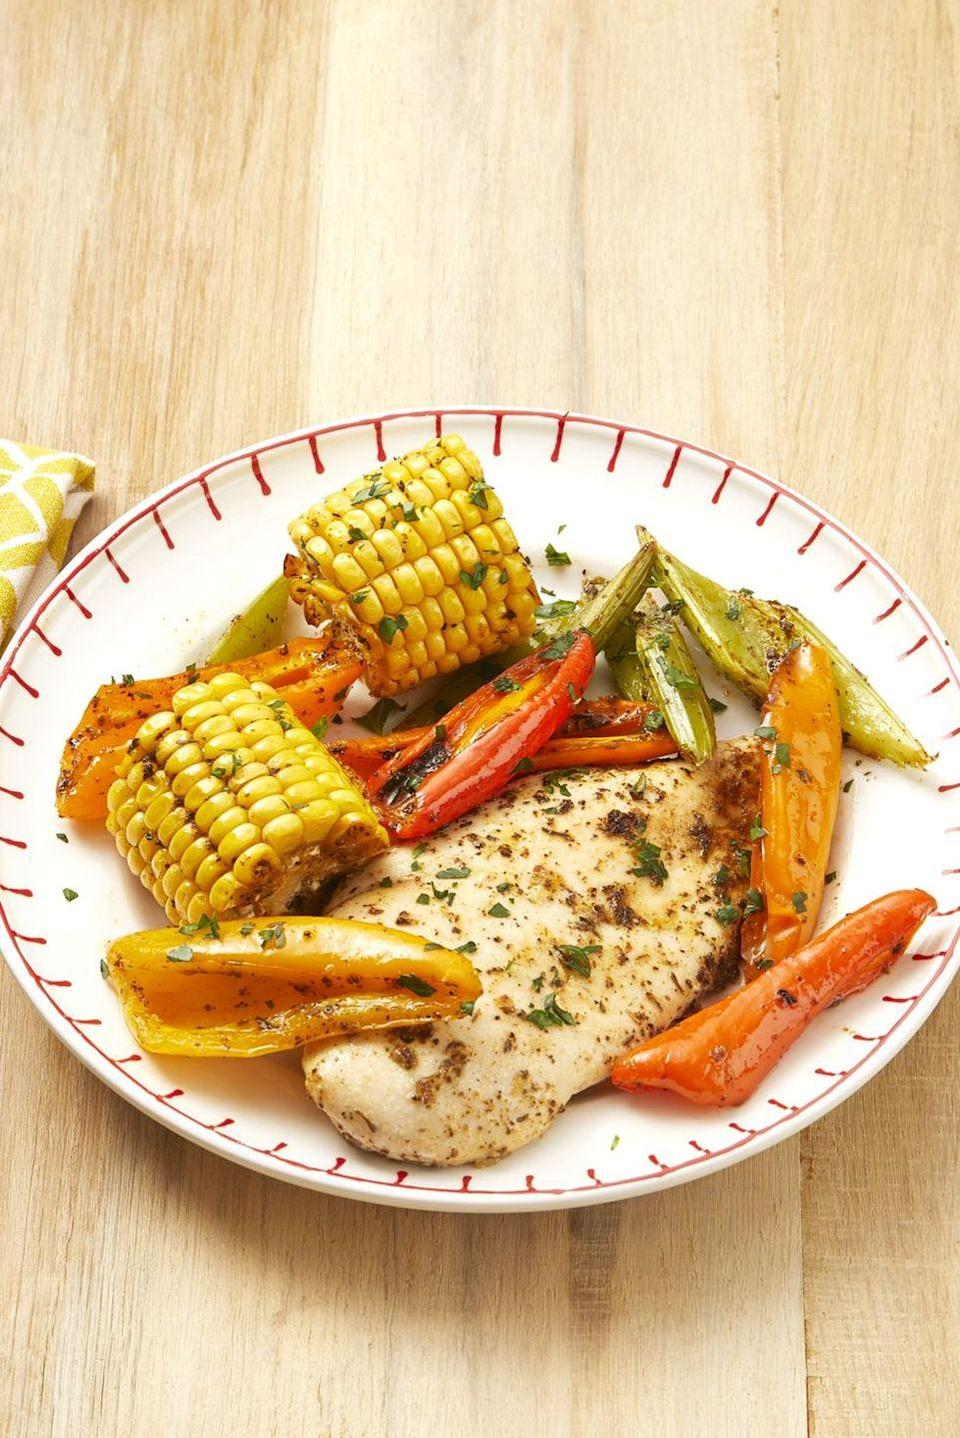 "<p>This one-sheet dinner has minimal cleanup. It also has steps to make your own Cajun seasoning!</p><p><strong><a href=""https://www.thepioneerwoman.com/food-cooking/recipes/a32499127/sheet-pan-cajun-chicken-and-corn-recipe/"" rel=""nofollow noopener"" target=""_blank"" data-ylk=""slk:Get Ree's recipe."" class=""link rapid-noclick-resp"">Get Ree's recipe.</a></strong></p><p><strong><a class=""link rapid-noclick-resp"" href=""https://go.redirectingat.com?id=74968X1596630&url=https%3A%2F%2Fwww.walmart.com%2Fsearch%2F%3Fquery%3Dsheet%2Bpans&sref=https%3A%2F%2Fwww.thepioneerwoman.com%2Ffood-cooking%2Fmeals-menus%2Fg35993911%2Fbest-corn-recipes%2F"" rel=""nofollow noopener"" target=""_blank"" data-ylk=""slk:SHOP SHEET PANS"">SHOP SHEET PANS</a></strong></p>"